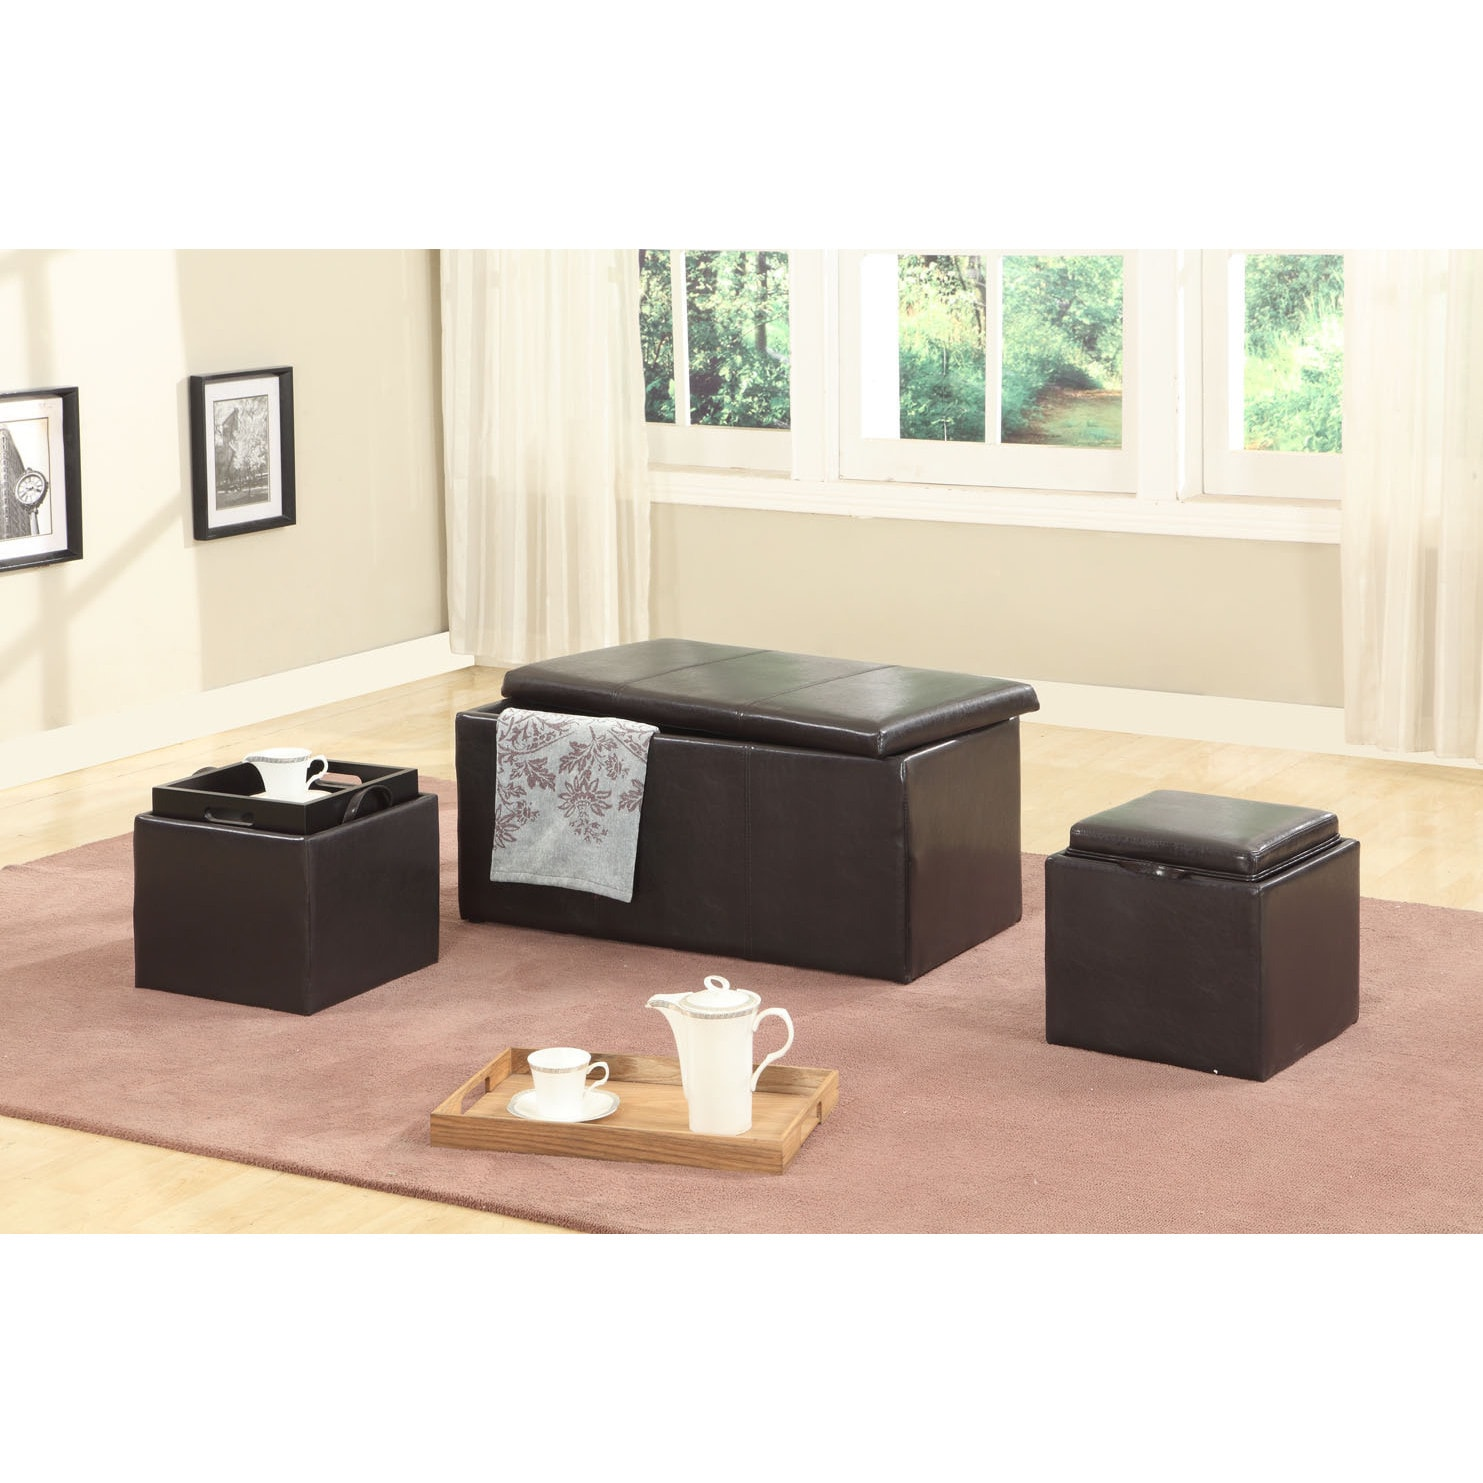 Trina Brown Triple Storage Ottomans with Wooden Trays (Se...